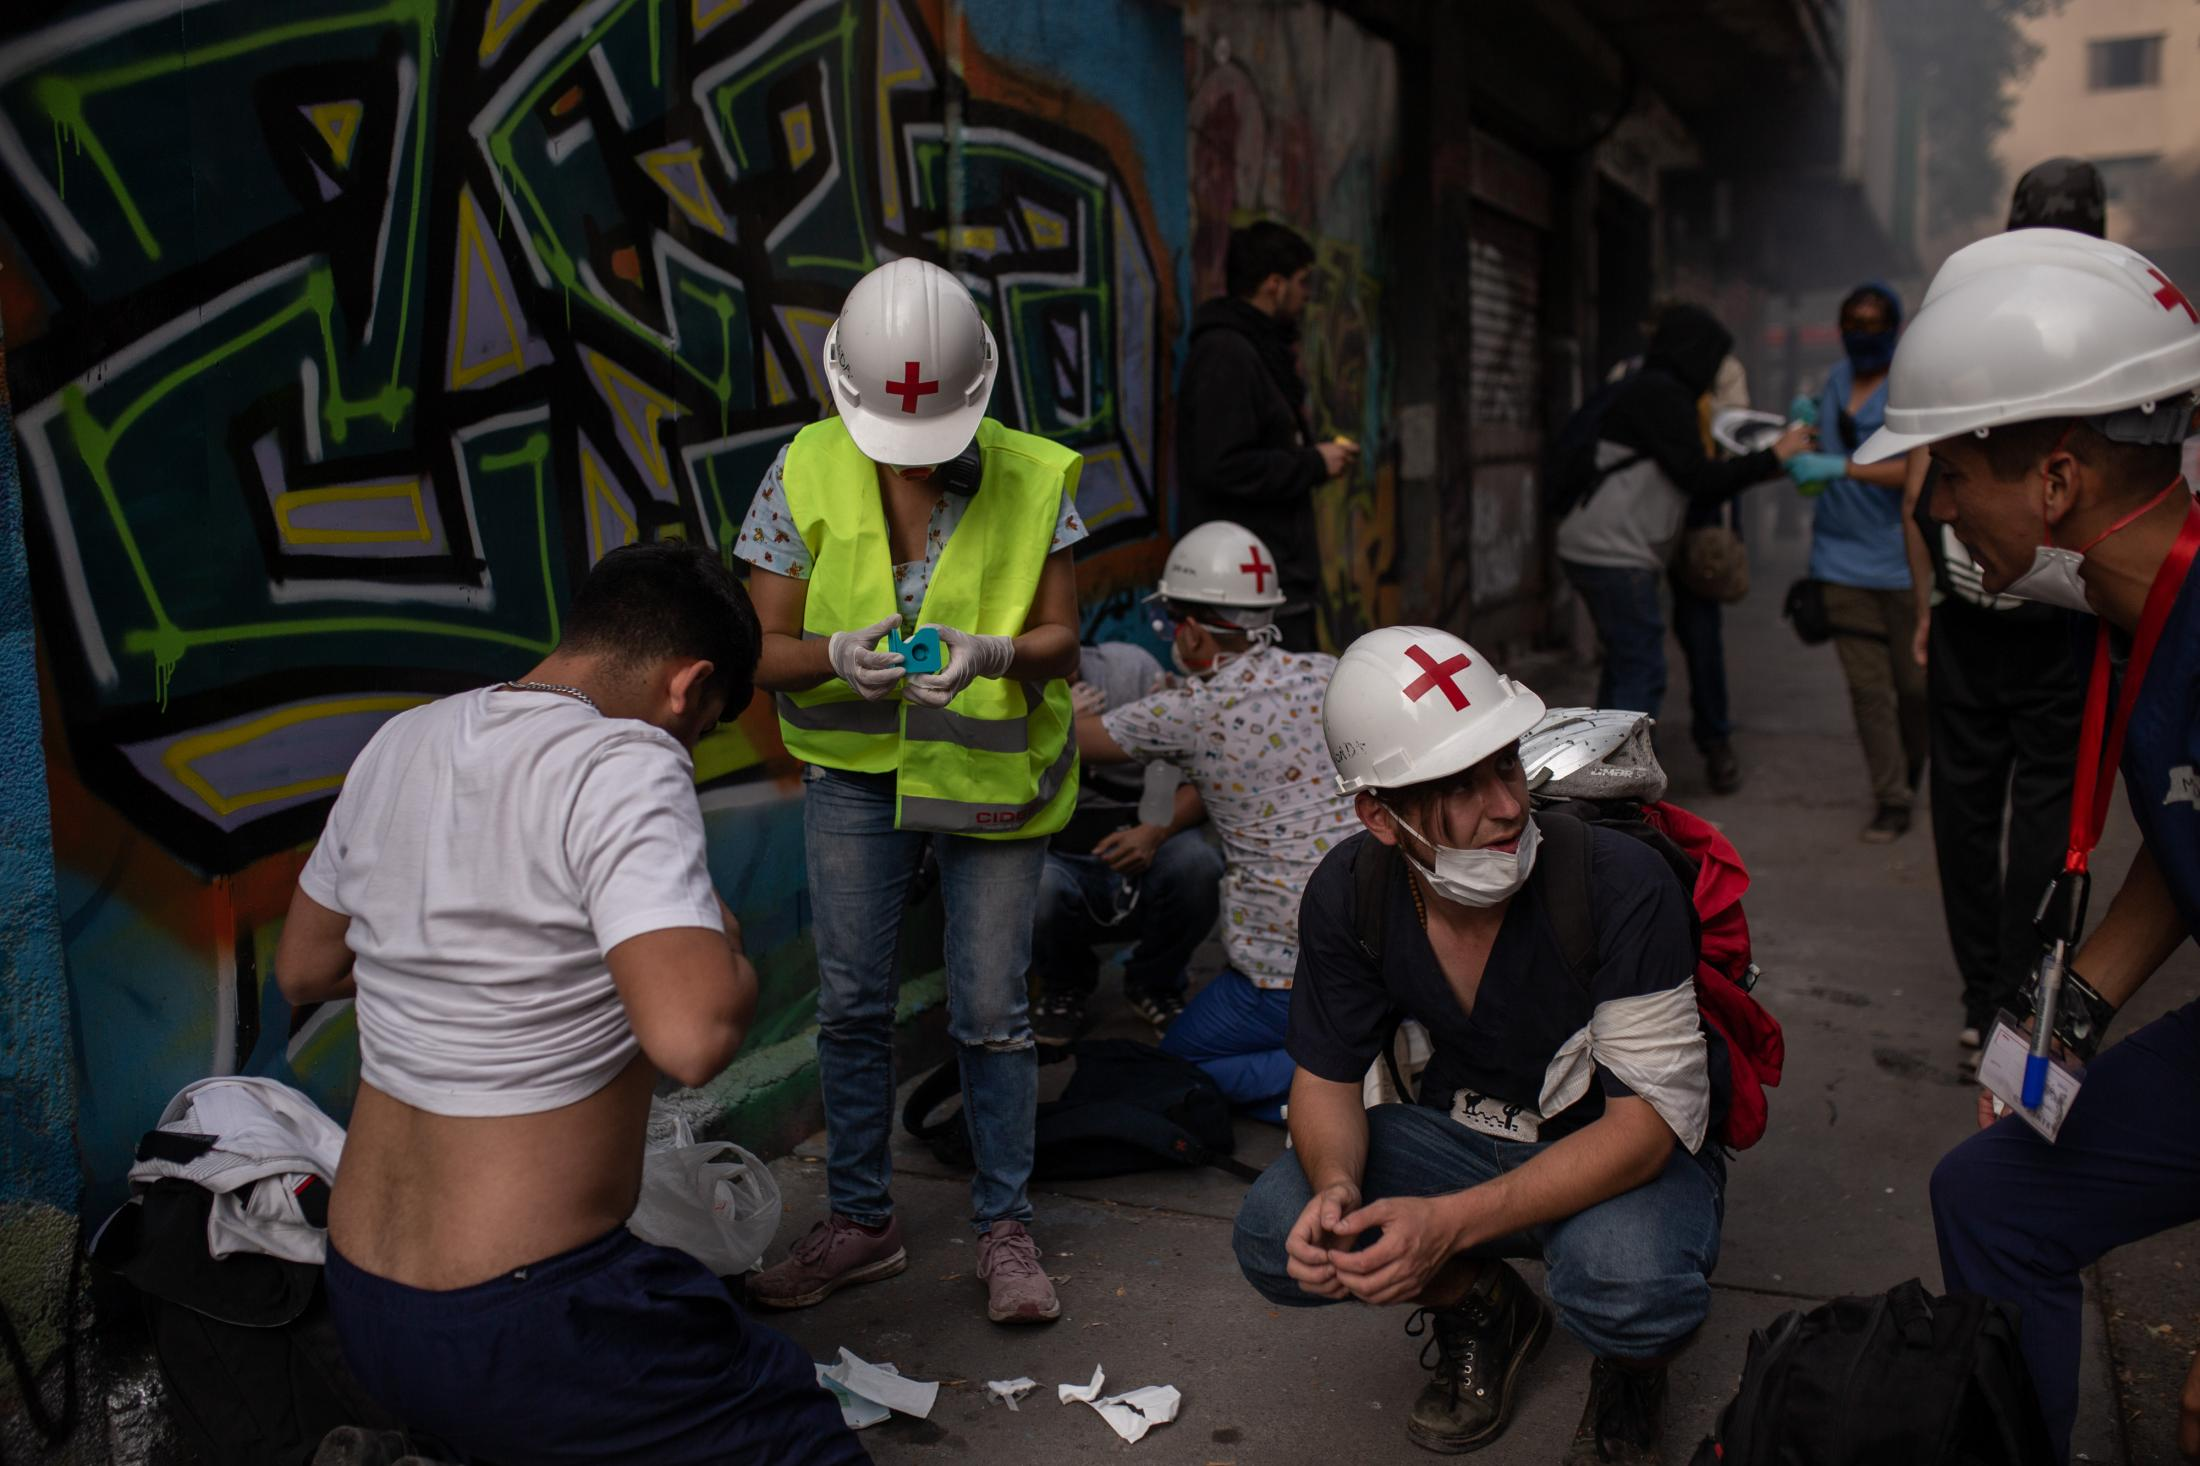 November, 4, 2019. A group of volunteer nurses attend to injured people during a day of protests in Santiago, Chile